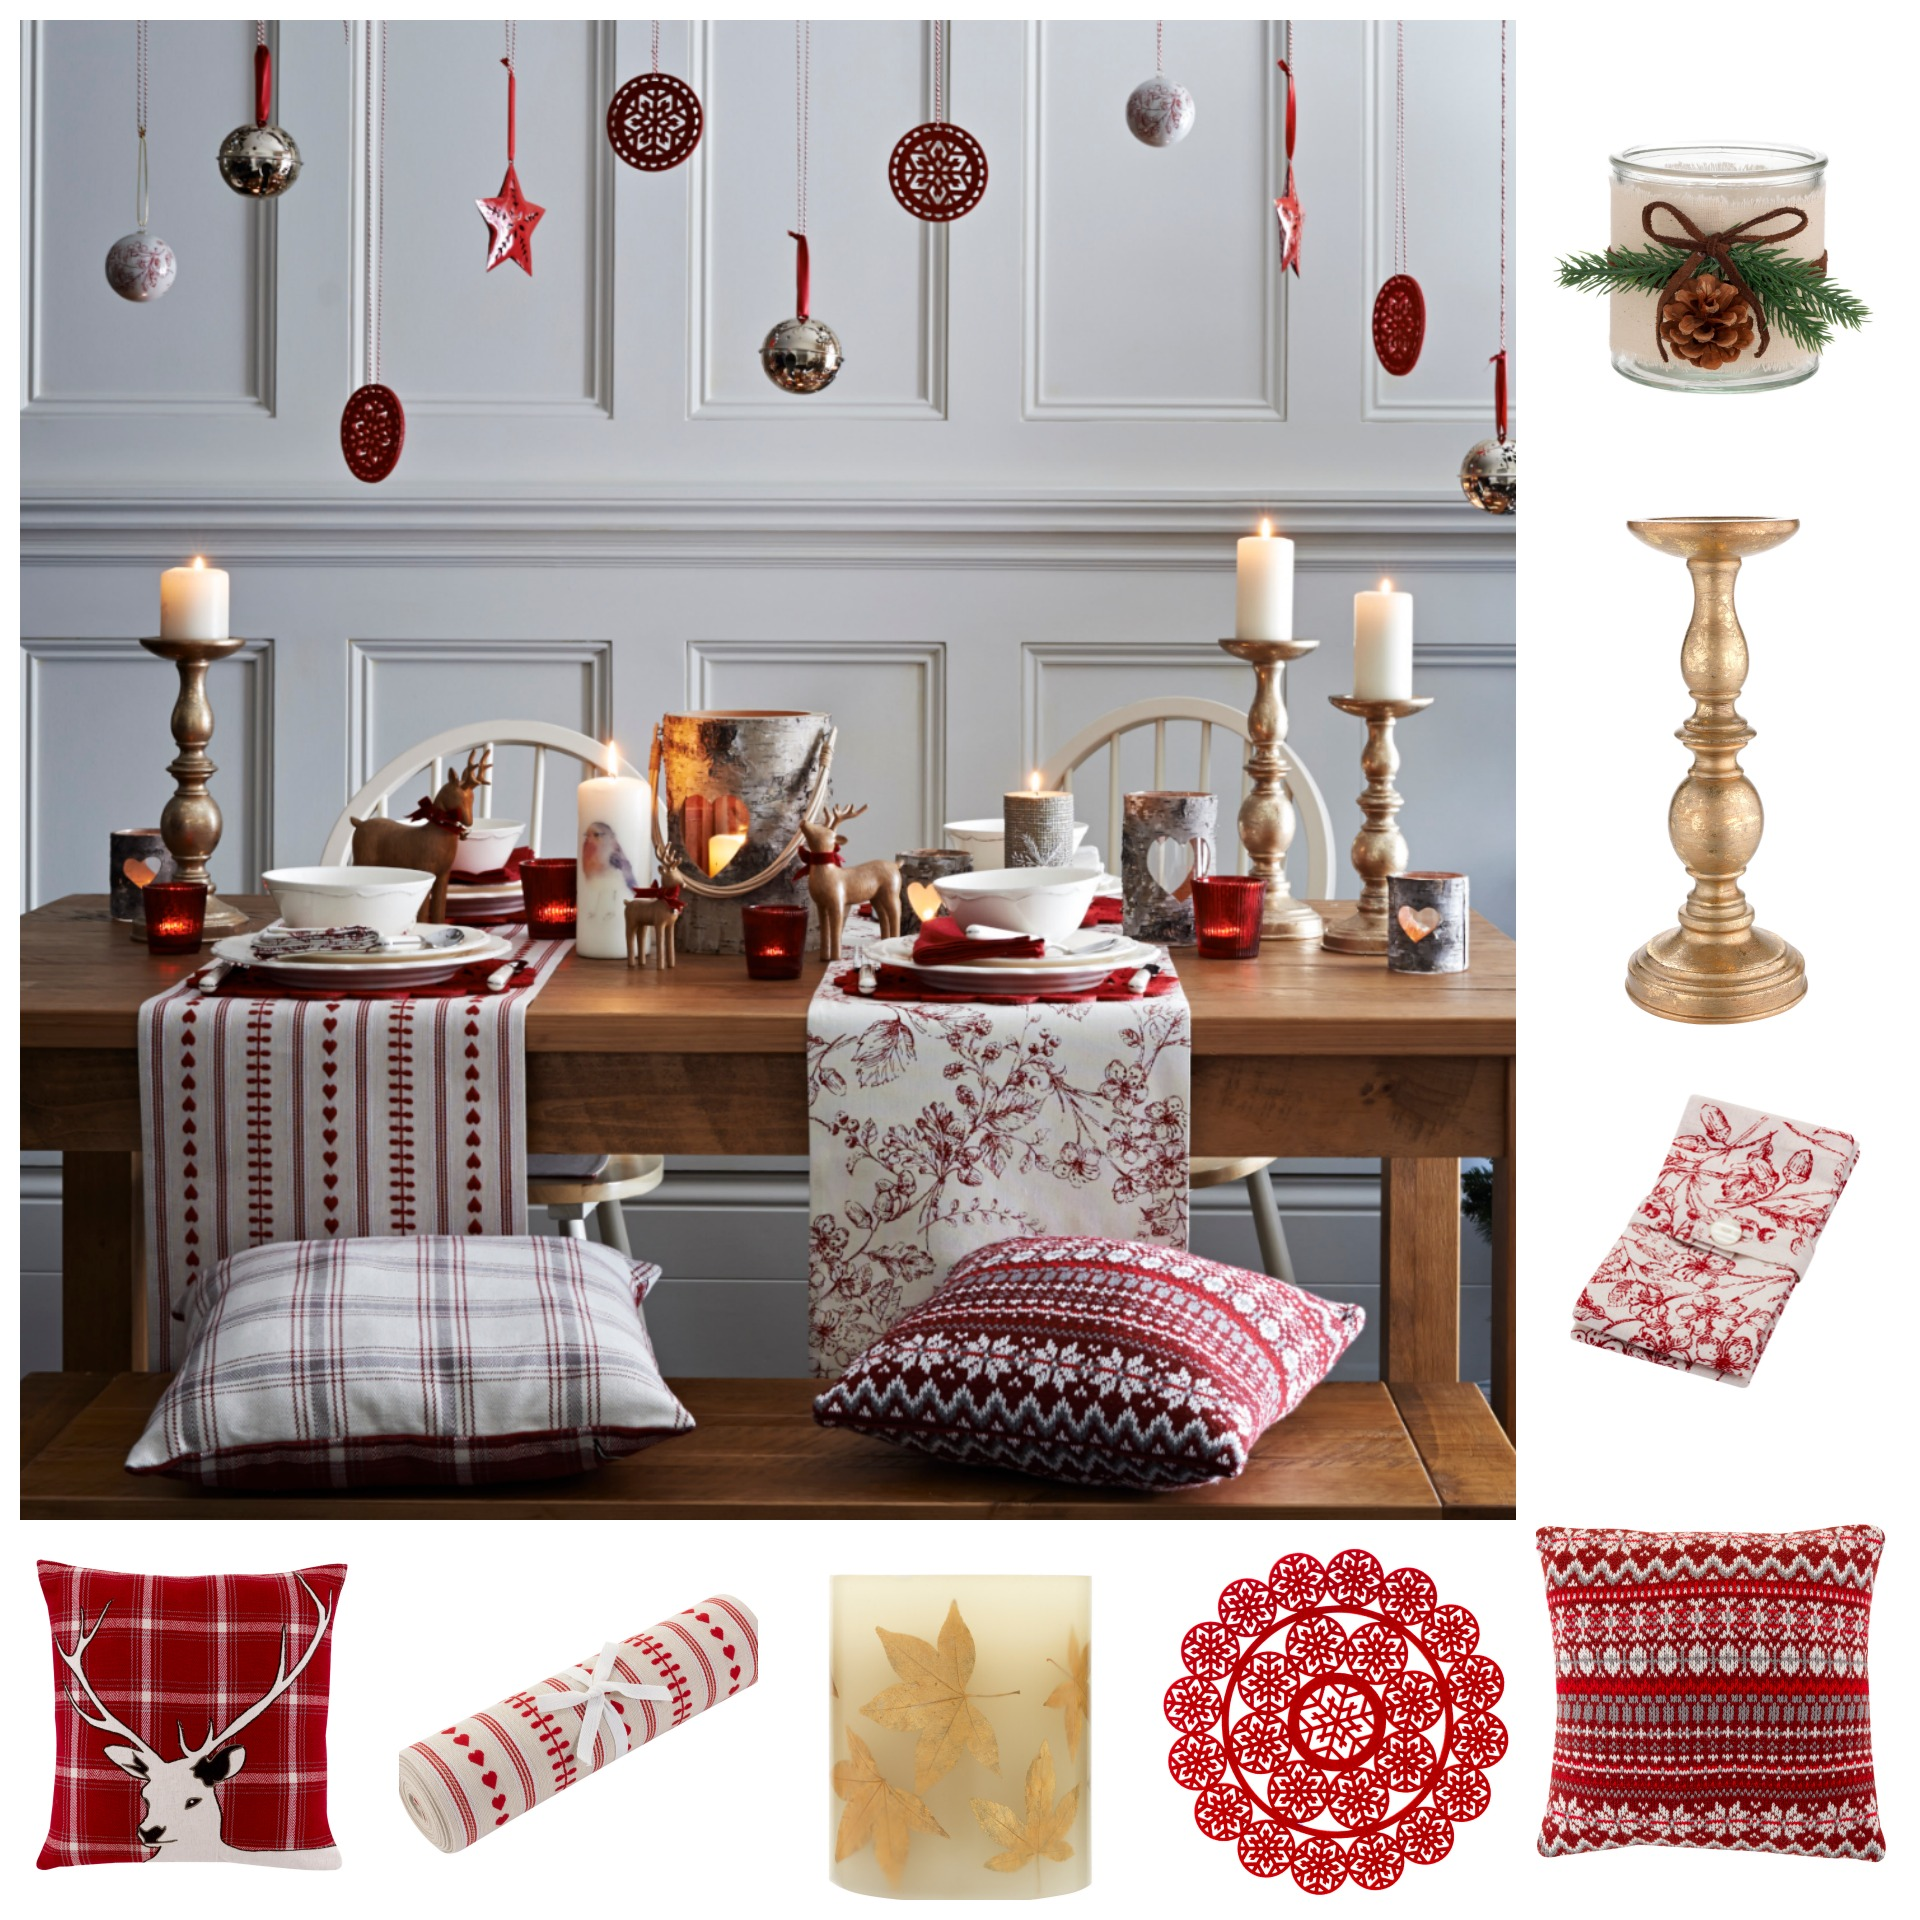 A stylish winter table setting will impress your dinner guests